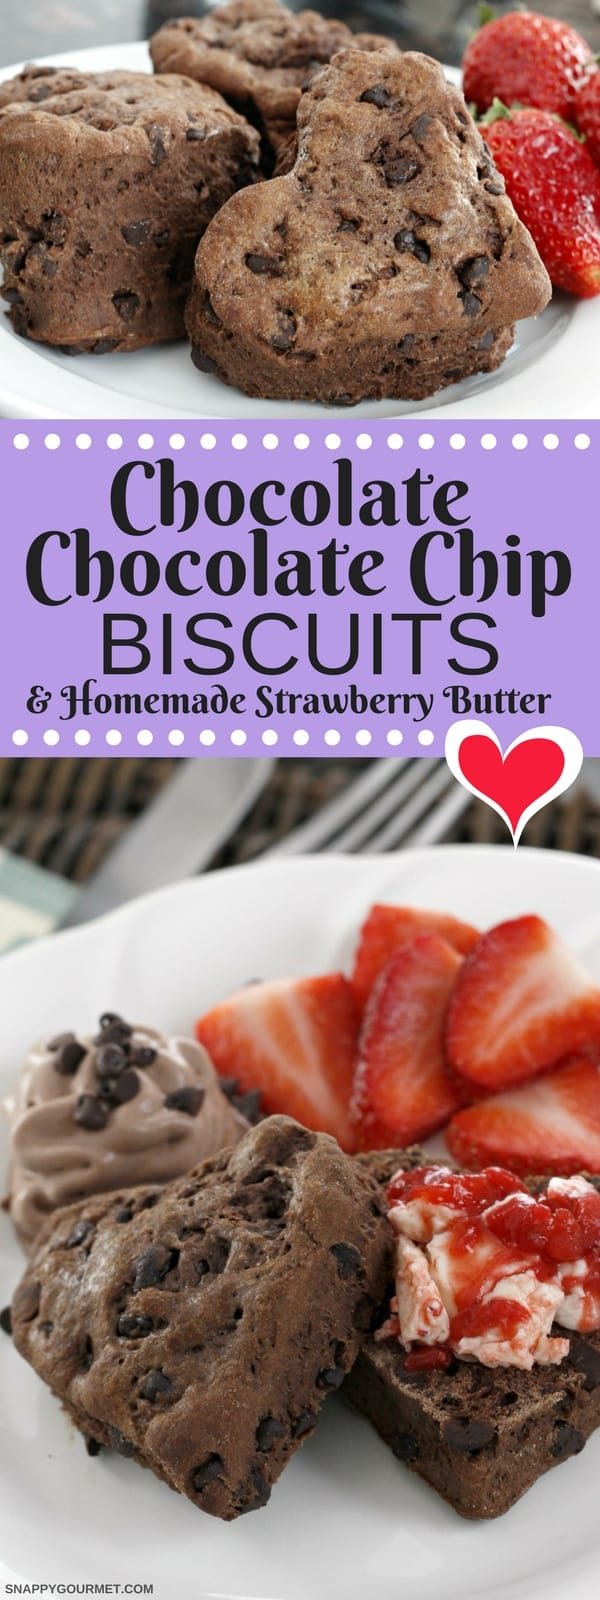 Chocolate Chocolate Chip Biscuits recipe - an easy from scratch biscuit recipe with a homemade strawberry butter.